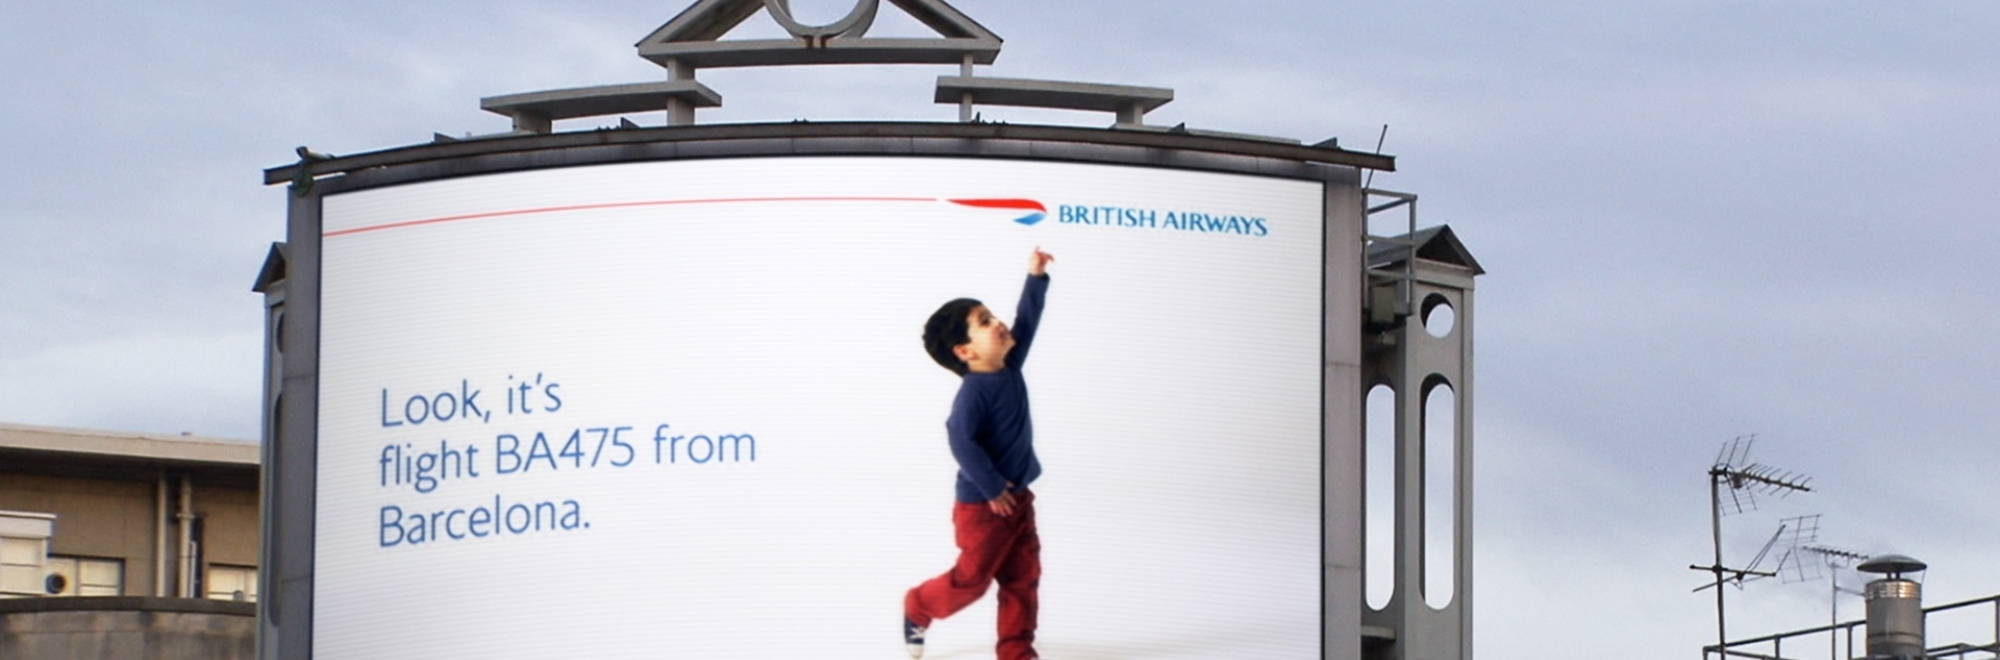 Combining children, creativity and technology: BA's billboard campaign